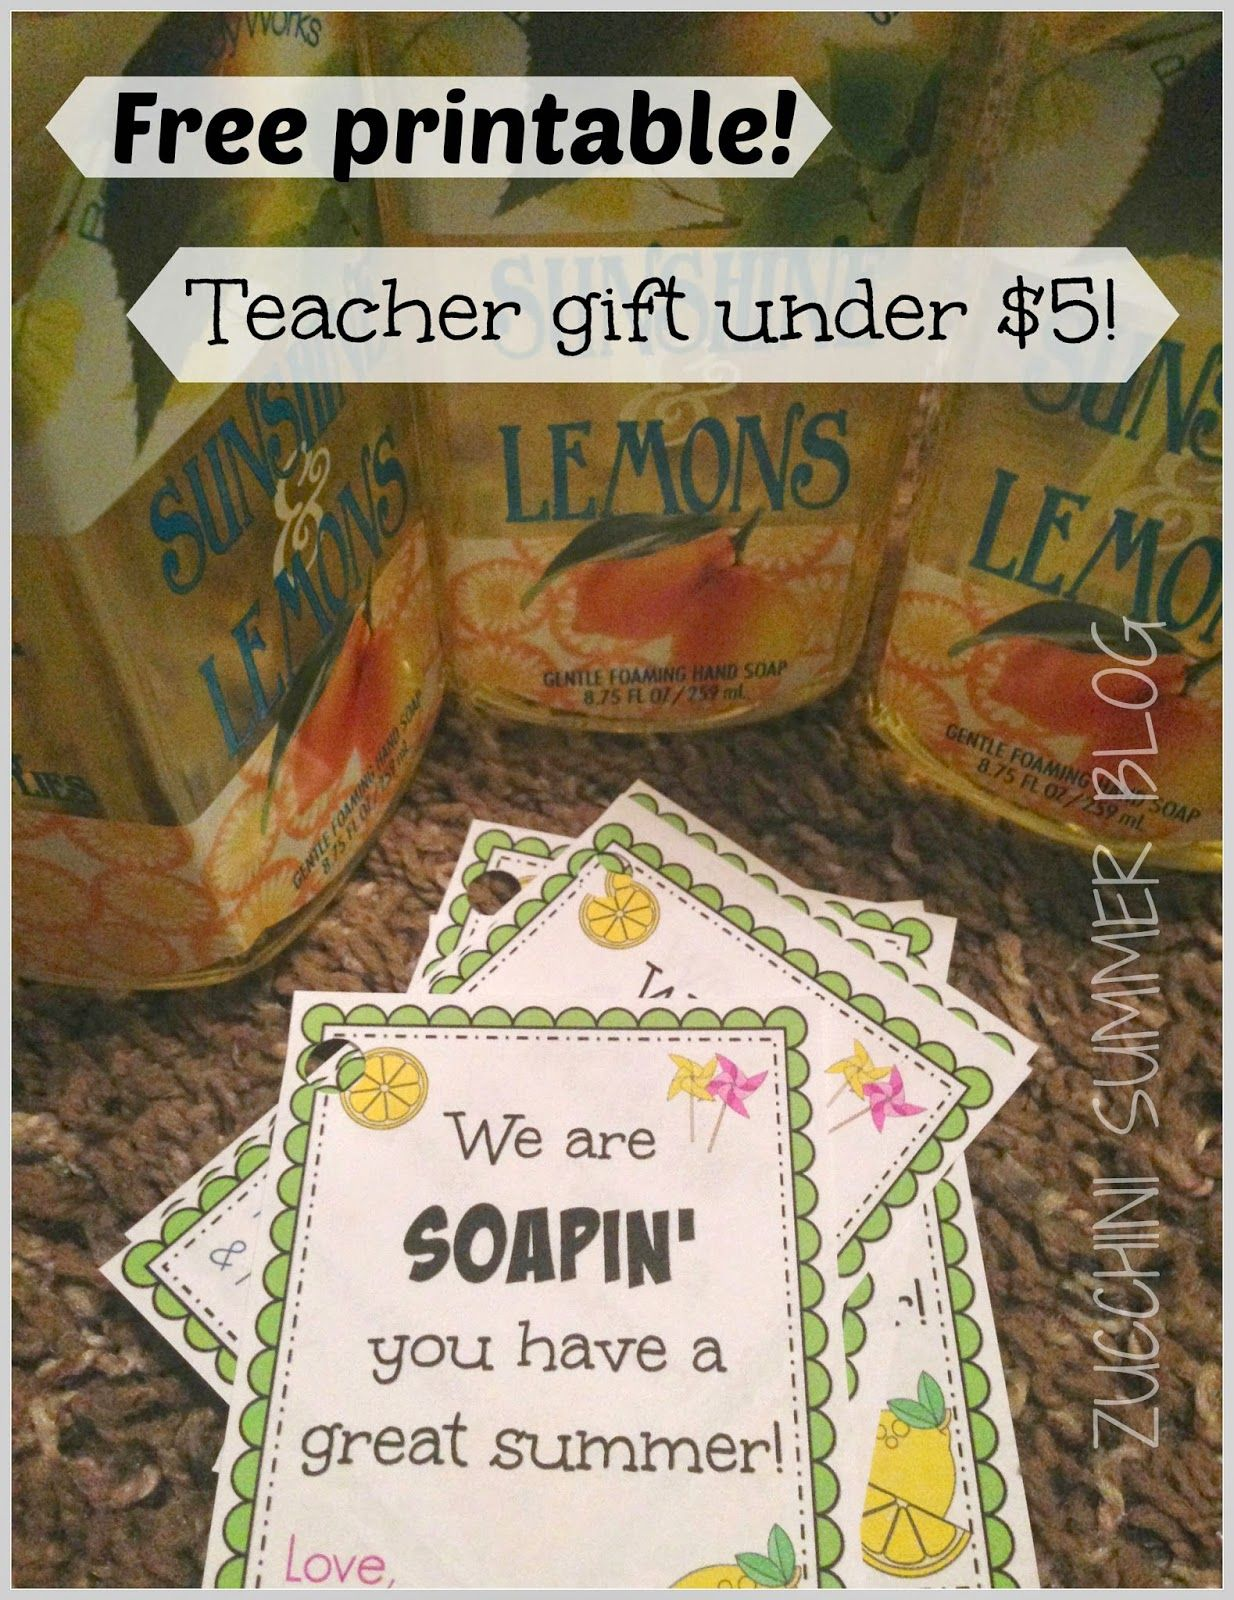 We are soapin you have a great summer teacher appreciation gift we are soapin you have a great summer teacher appreciation gift add bottle negle Image collections